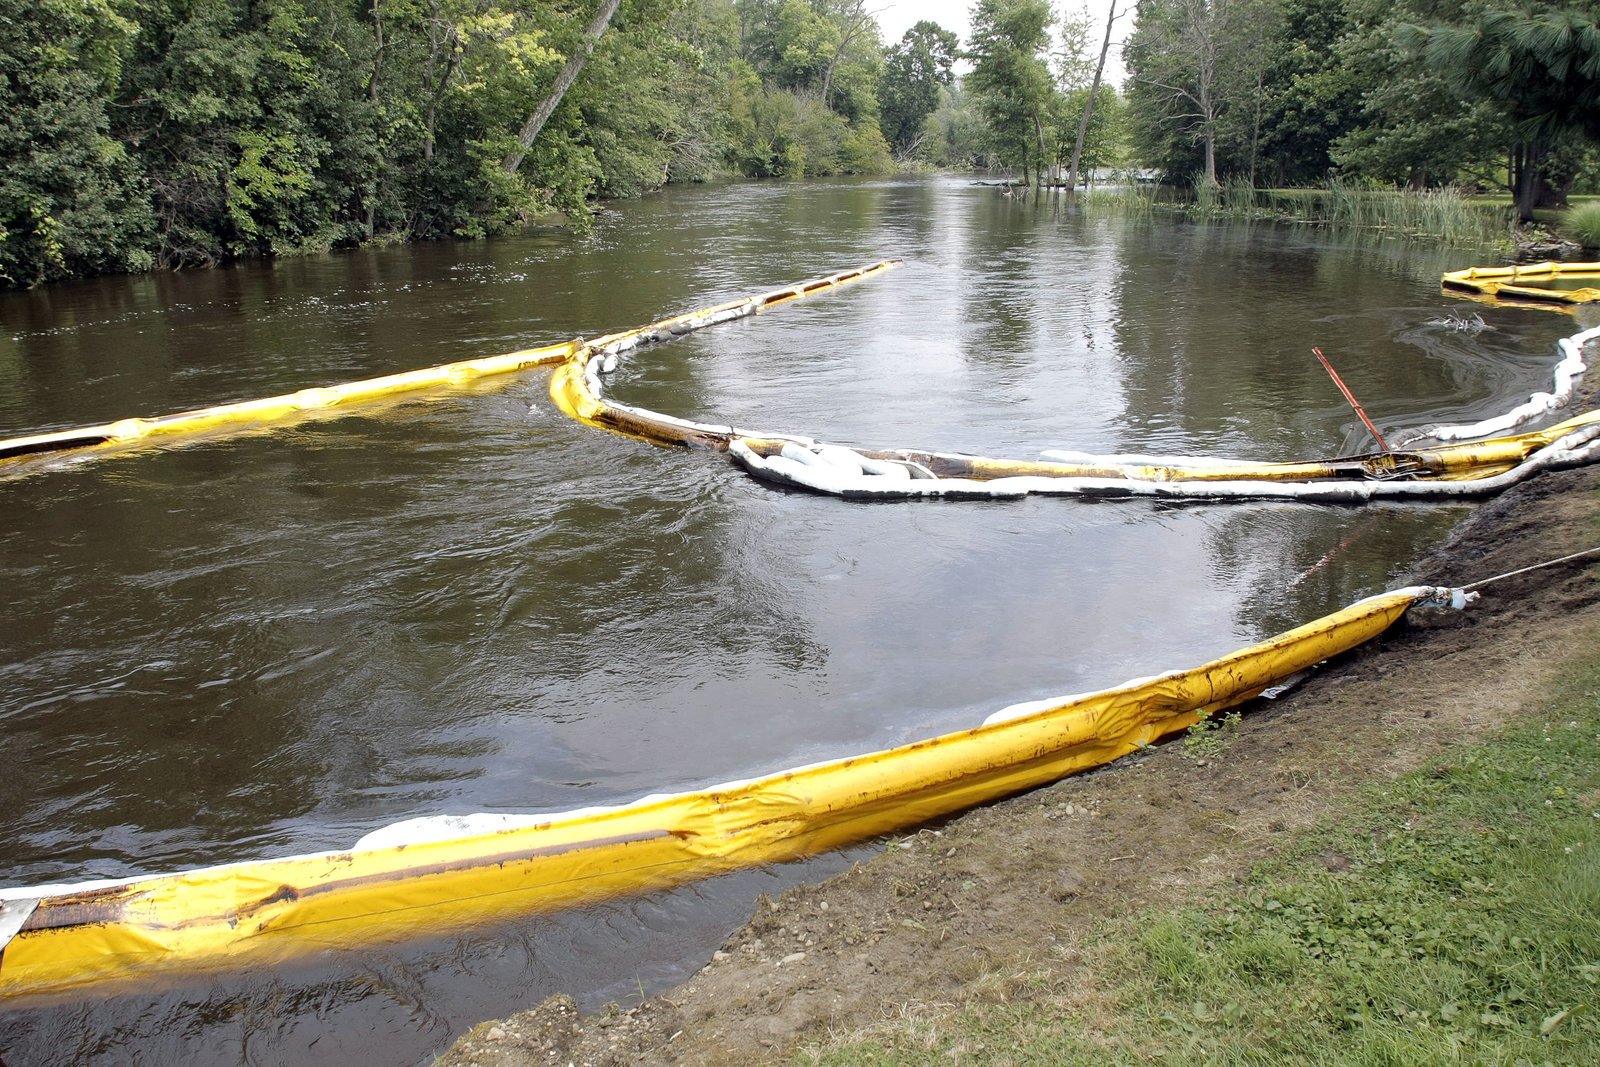 Enbridge's Michigan spill in 2010 has other states worried about its pipelines